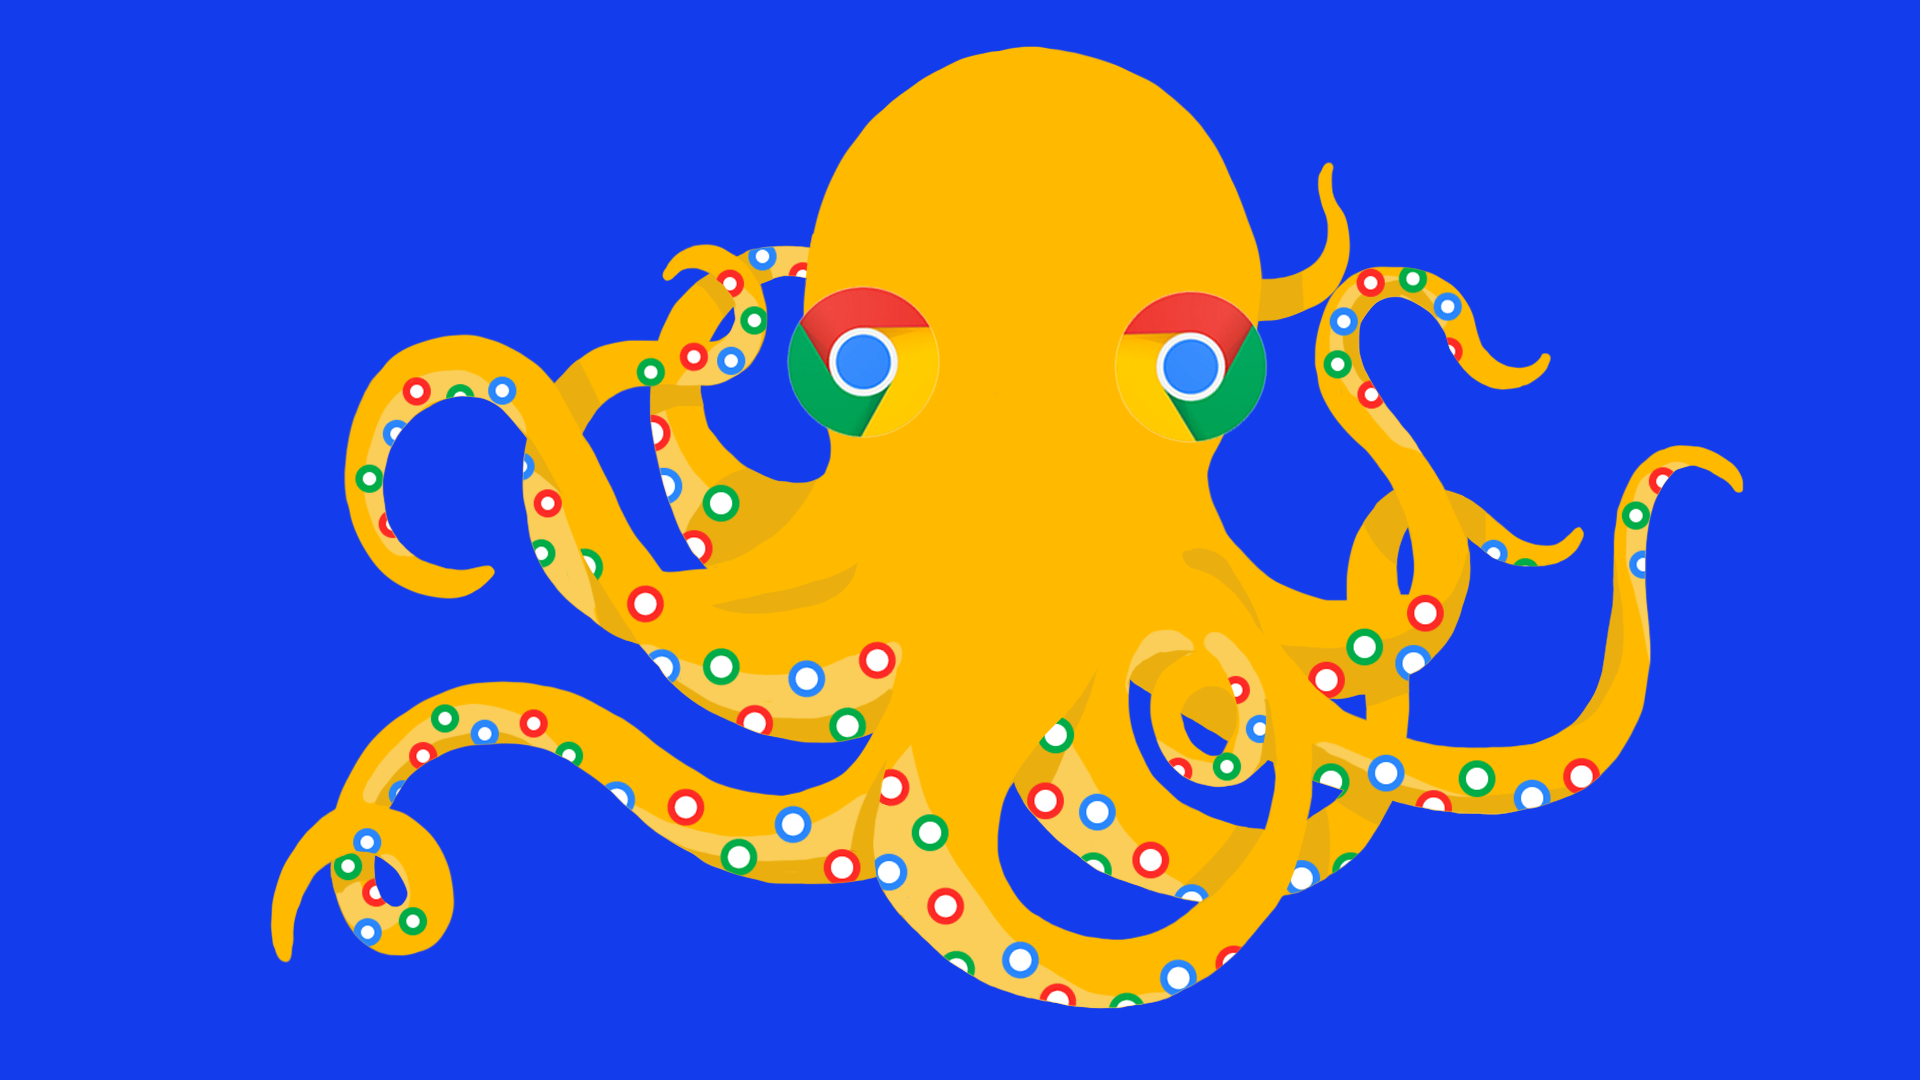 An octopus with Google Chrome logo on it